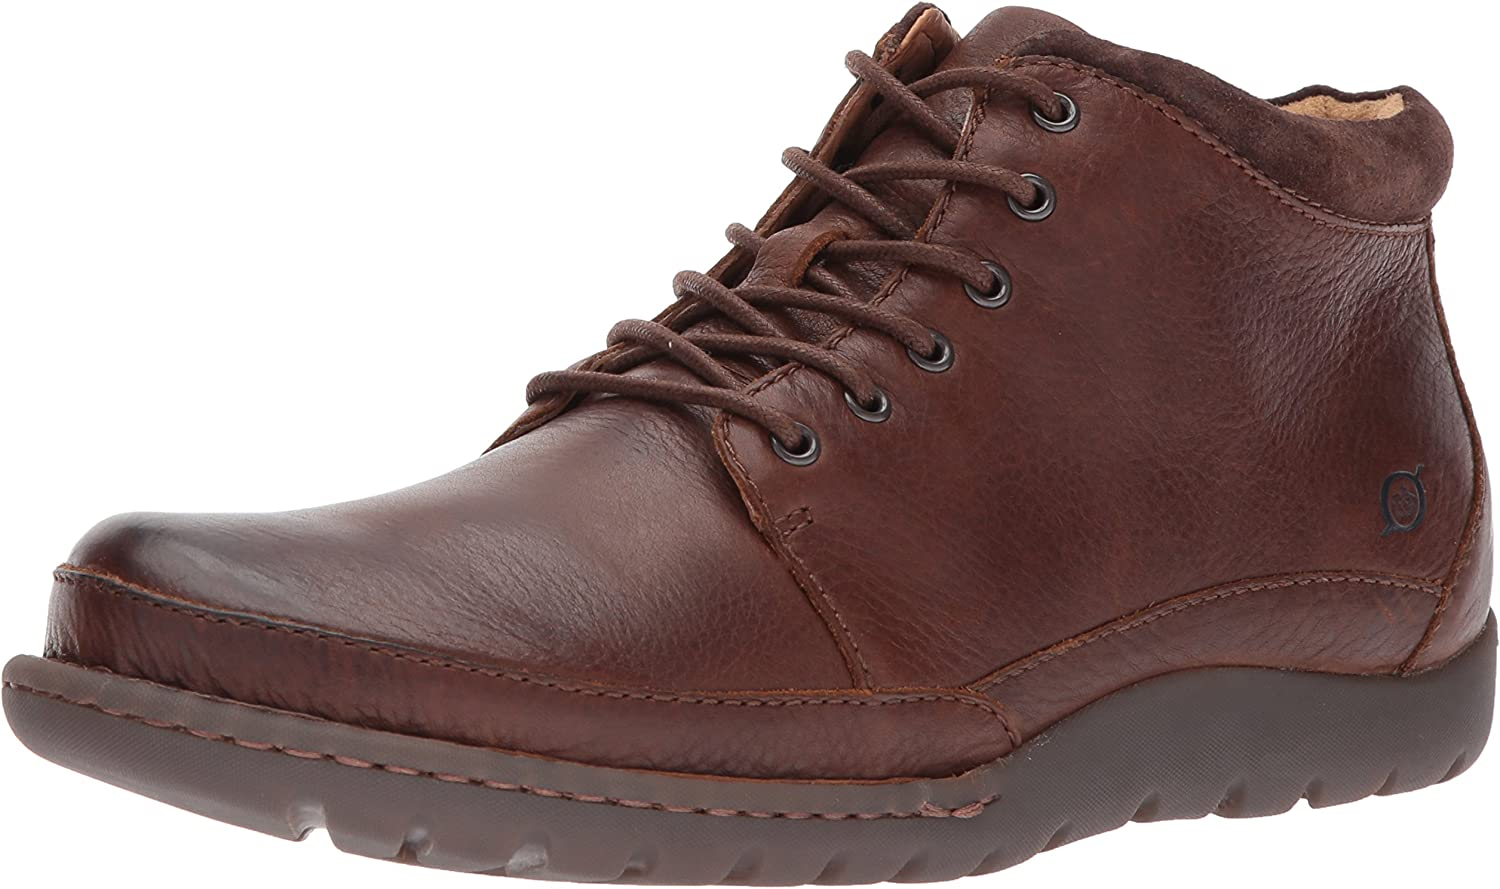 At the price of surprise BORN - Mesa Mall Mens Boot Nigel